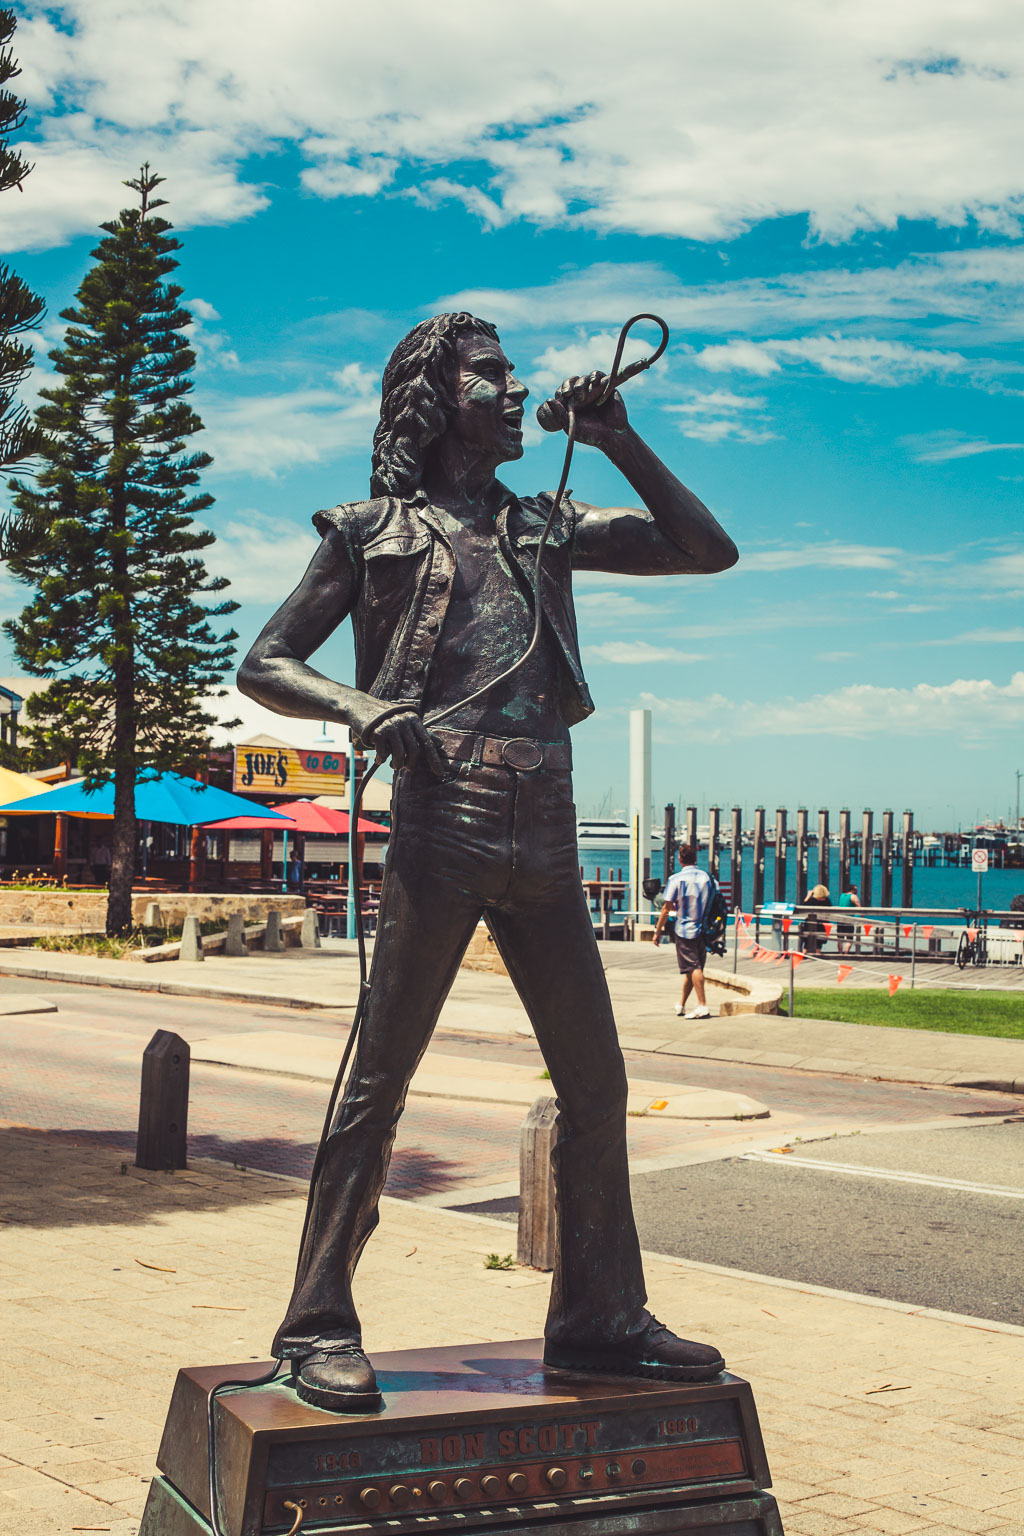 Perth (Fremantle) Smartphone Photography Course